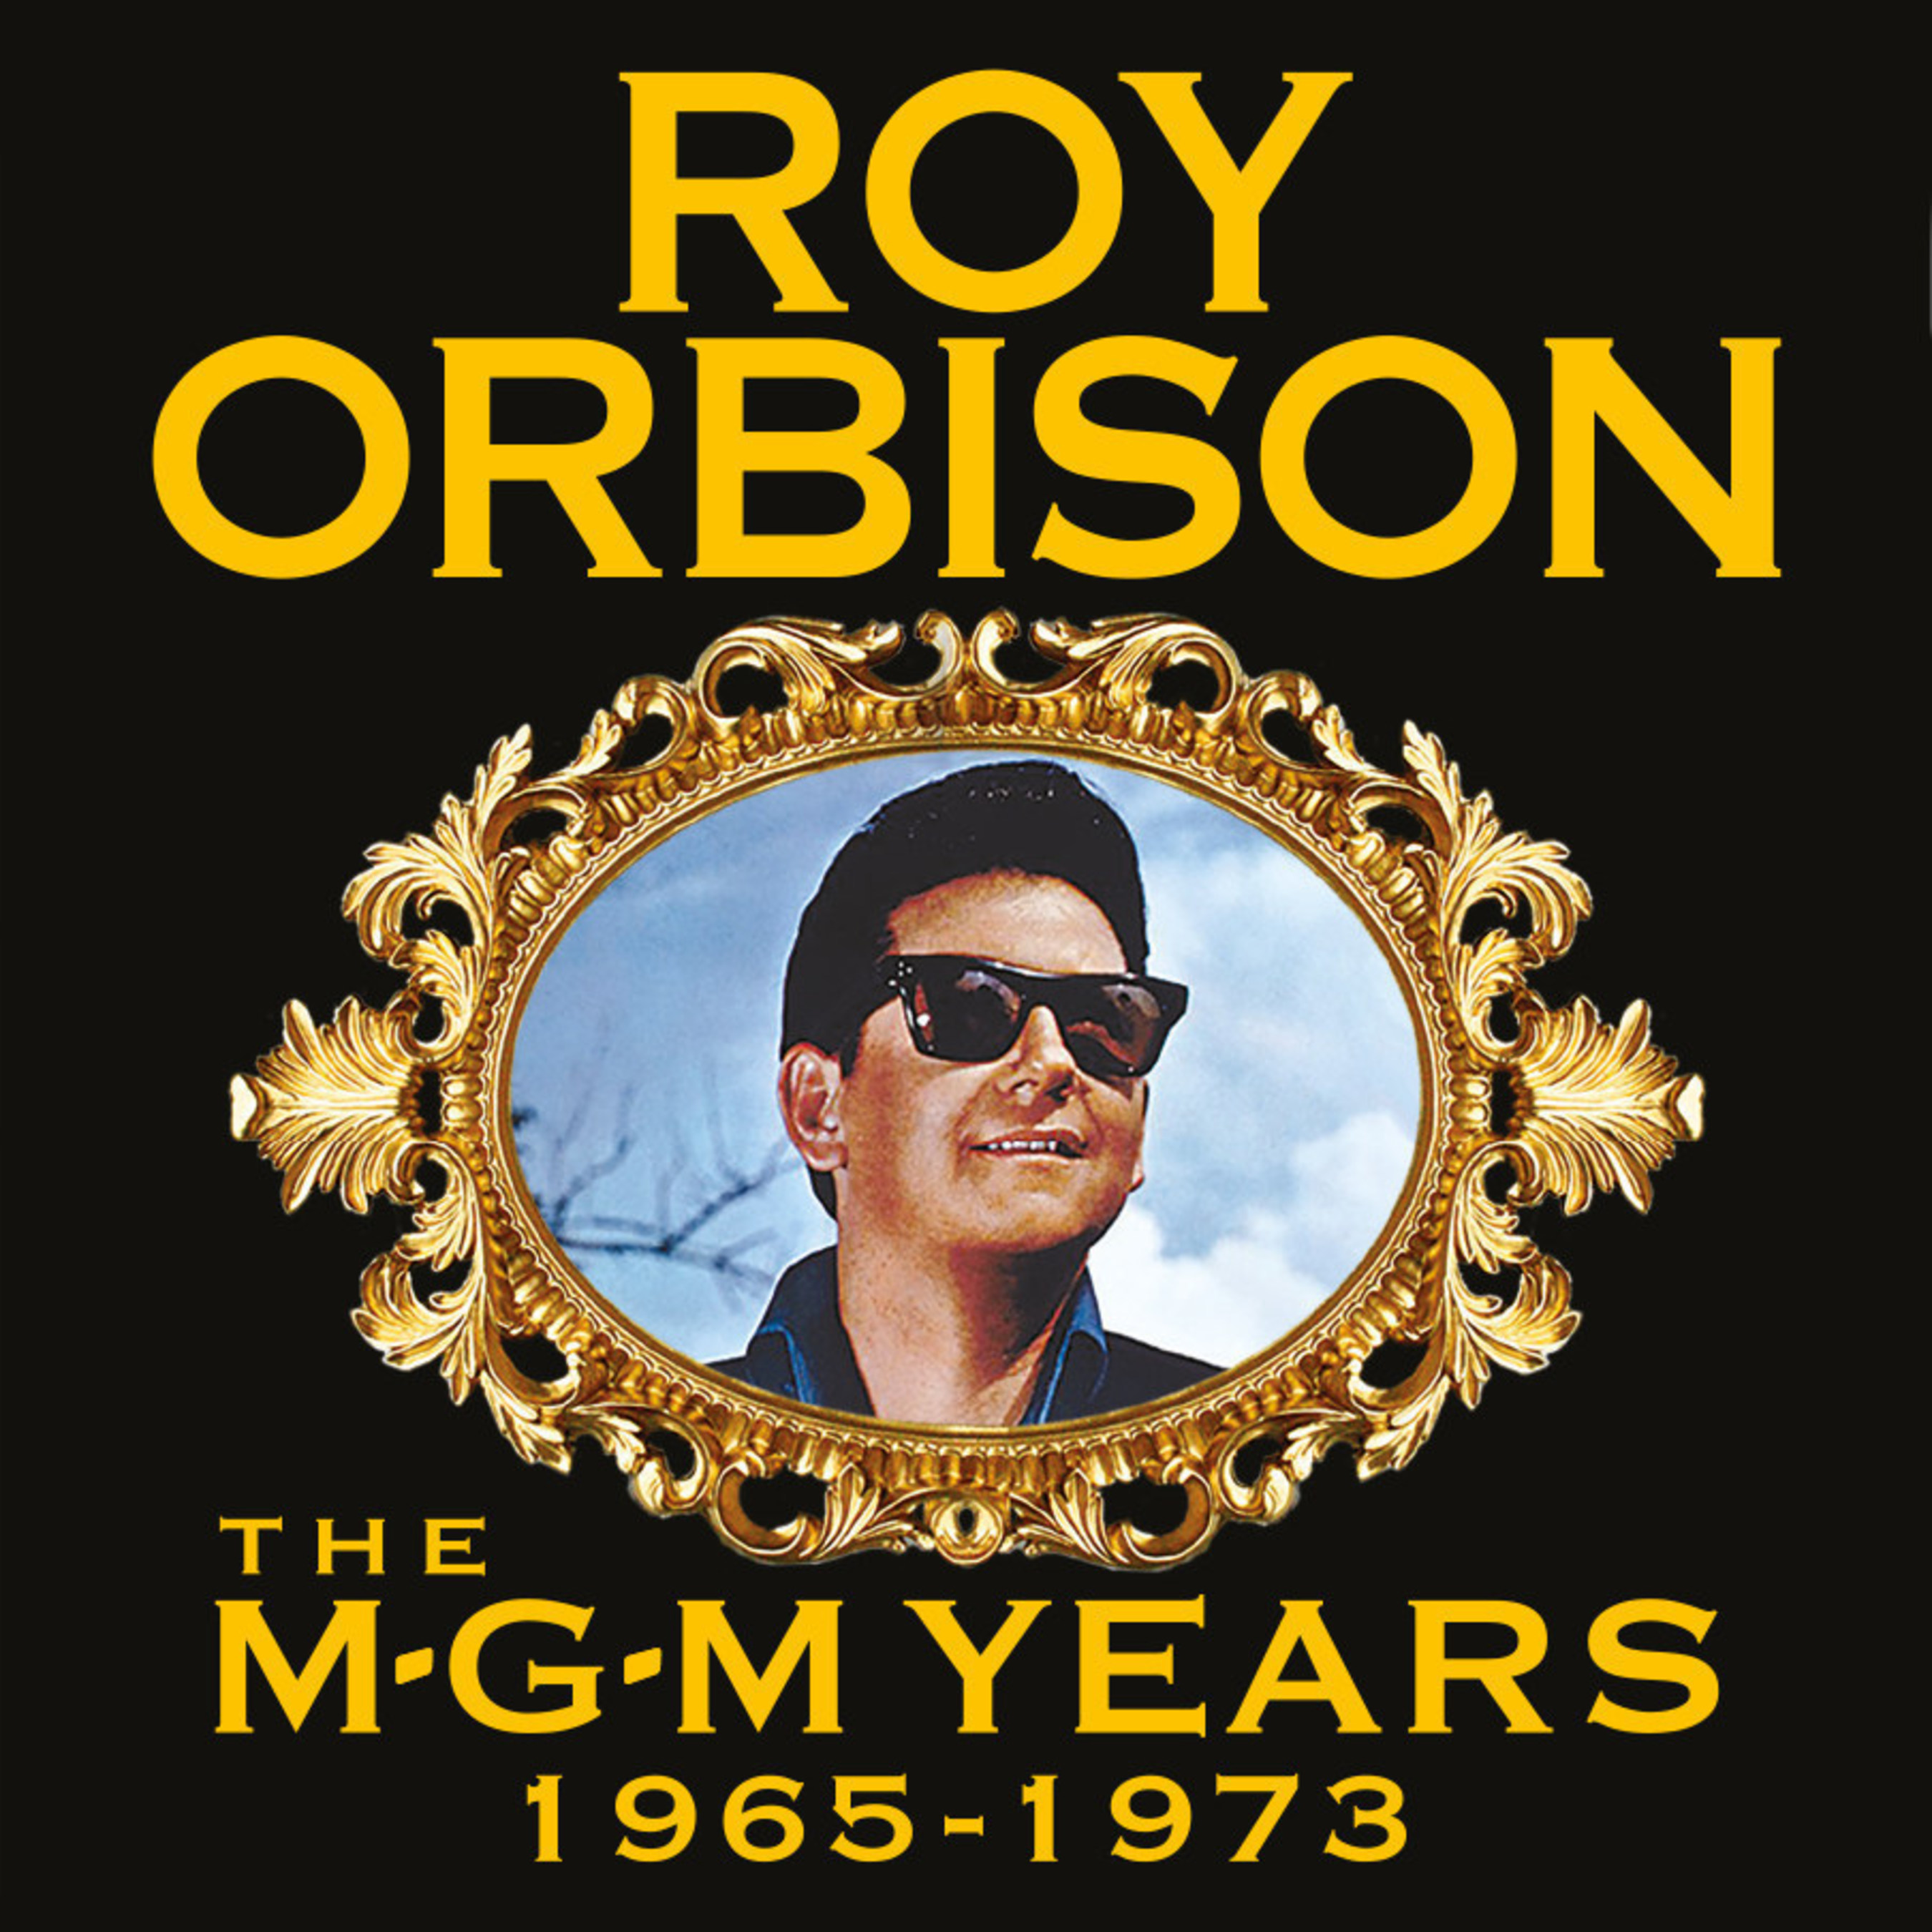 """2015 marks an historic 50-year milestone for music legend Roy Orbison. On July 1, 1965, """"The Big O"""" left Monument Records and signed with MGM Records, going on to release 11 studio albums, a film soundtrack and 27 singles over the course of the following eight years, and at the same time scoring another 11 worldwide Top 40 hits. A new boxed collection of Orbison's 11 MGM albums, titled 'The MGM Years,' and a never before released """"lost"""" studio album recorded by Orbison in 1969, 'One of The Lonely Ones,' will be released worldwide on December 4."""